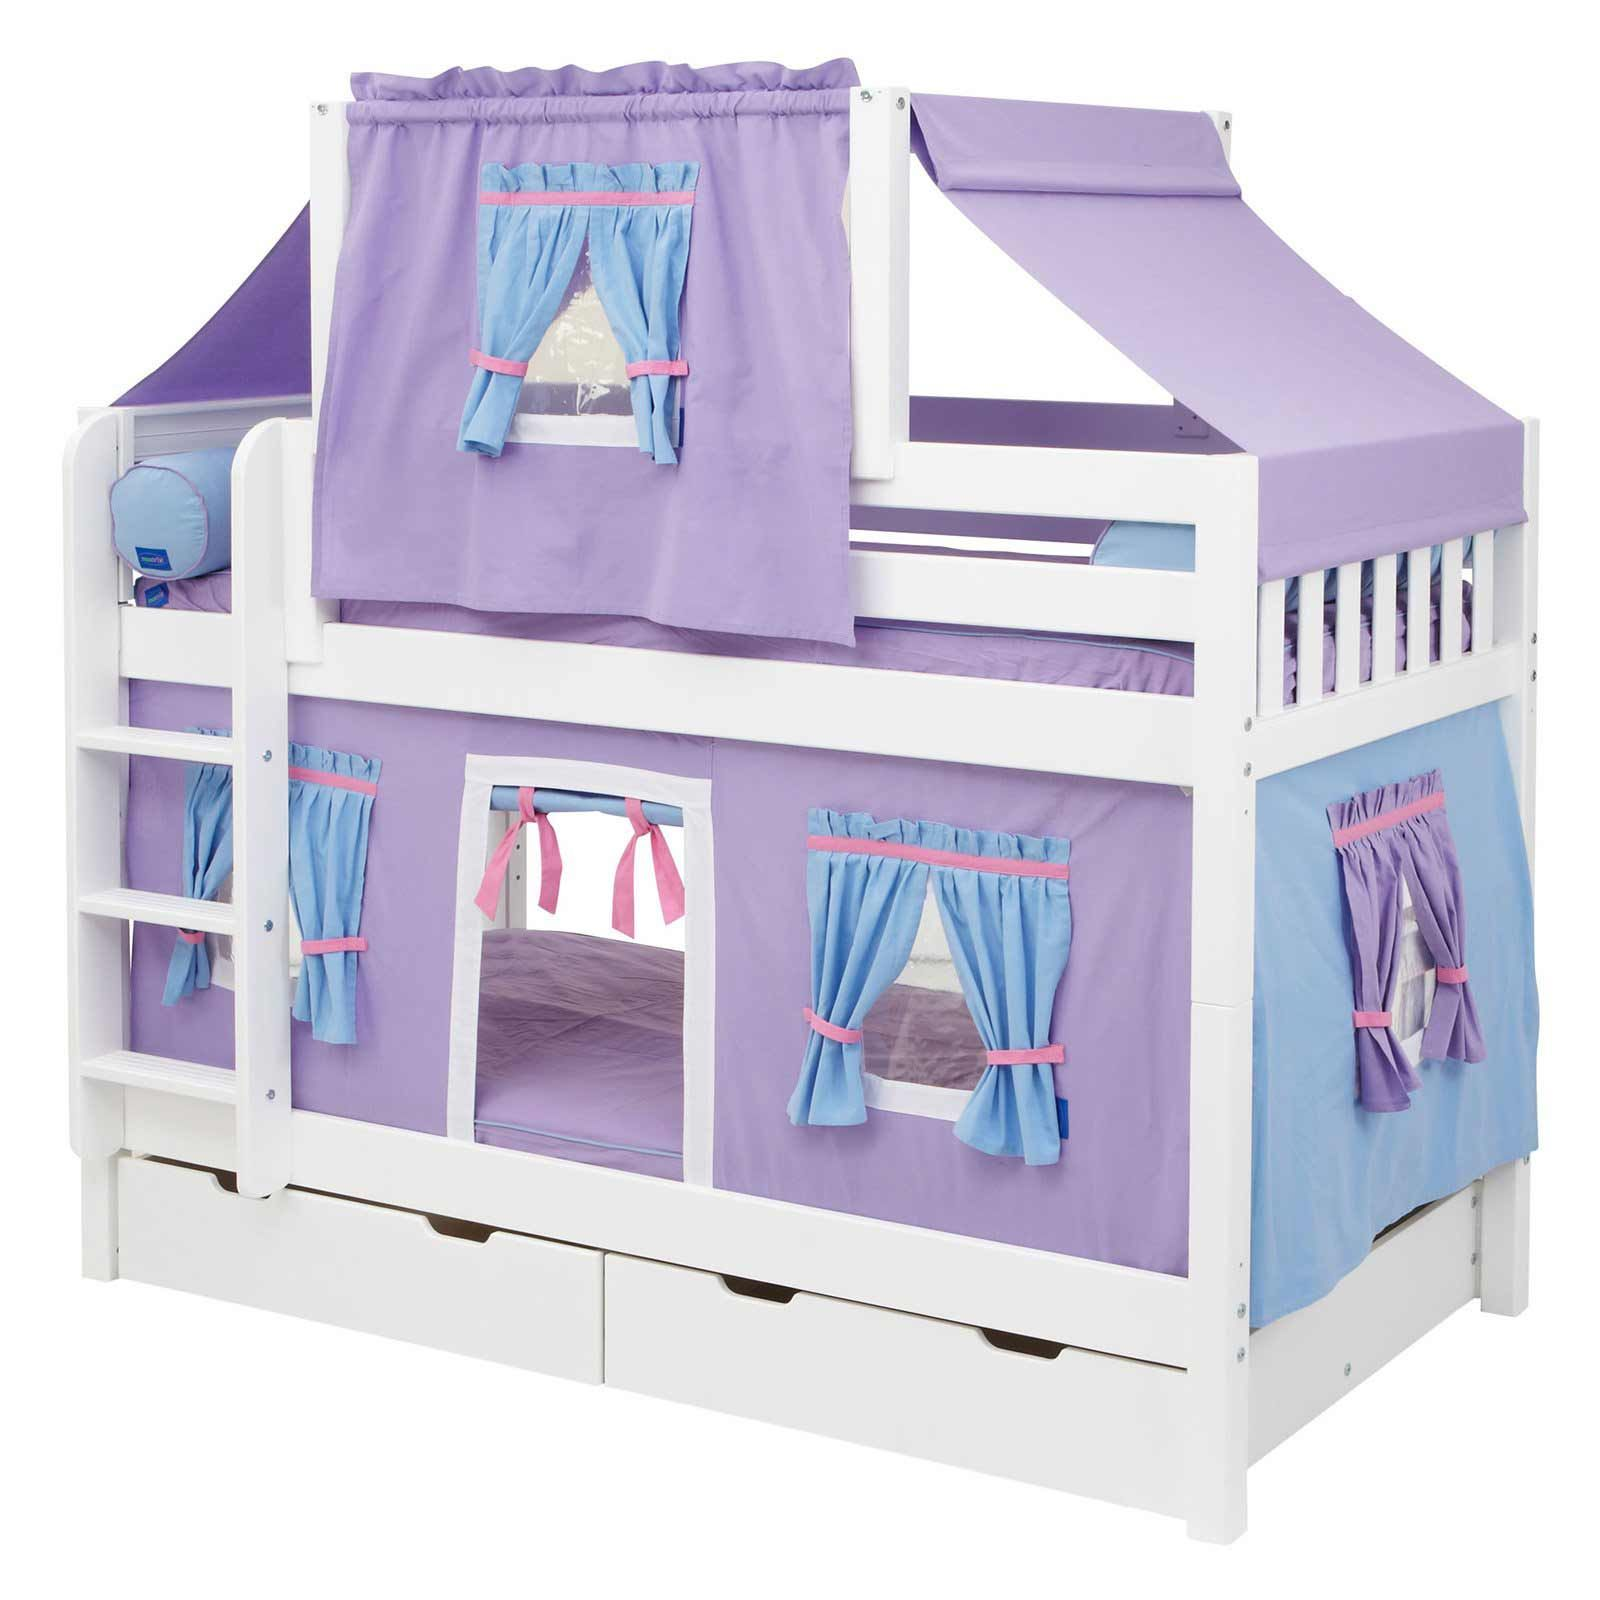 10 Awesome Girlsu0027 Bunk Beds  sc 1 st  Pinterest : castle tent bed - memphite.com